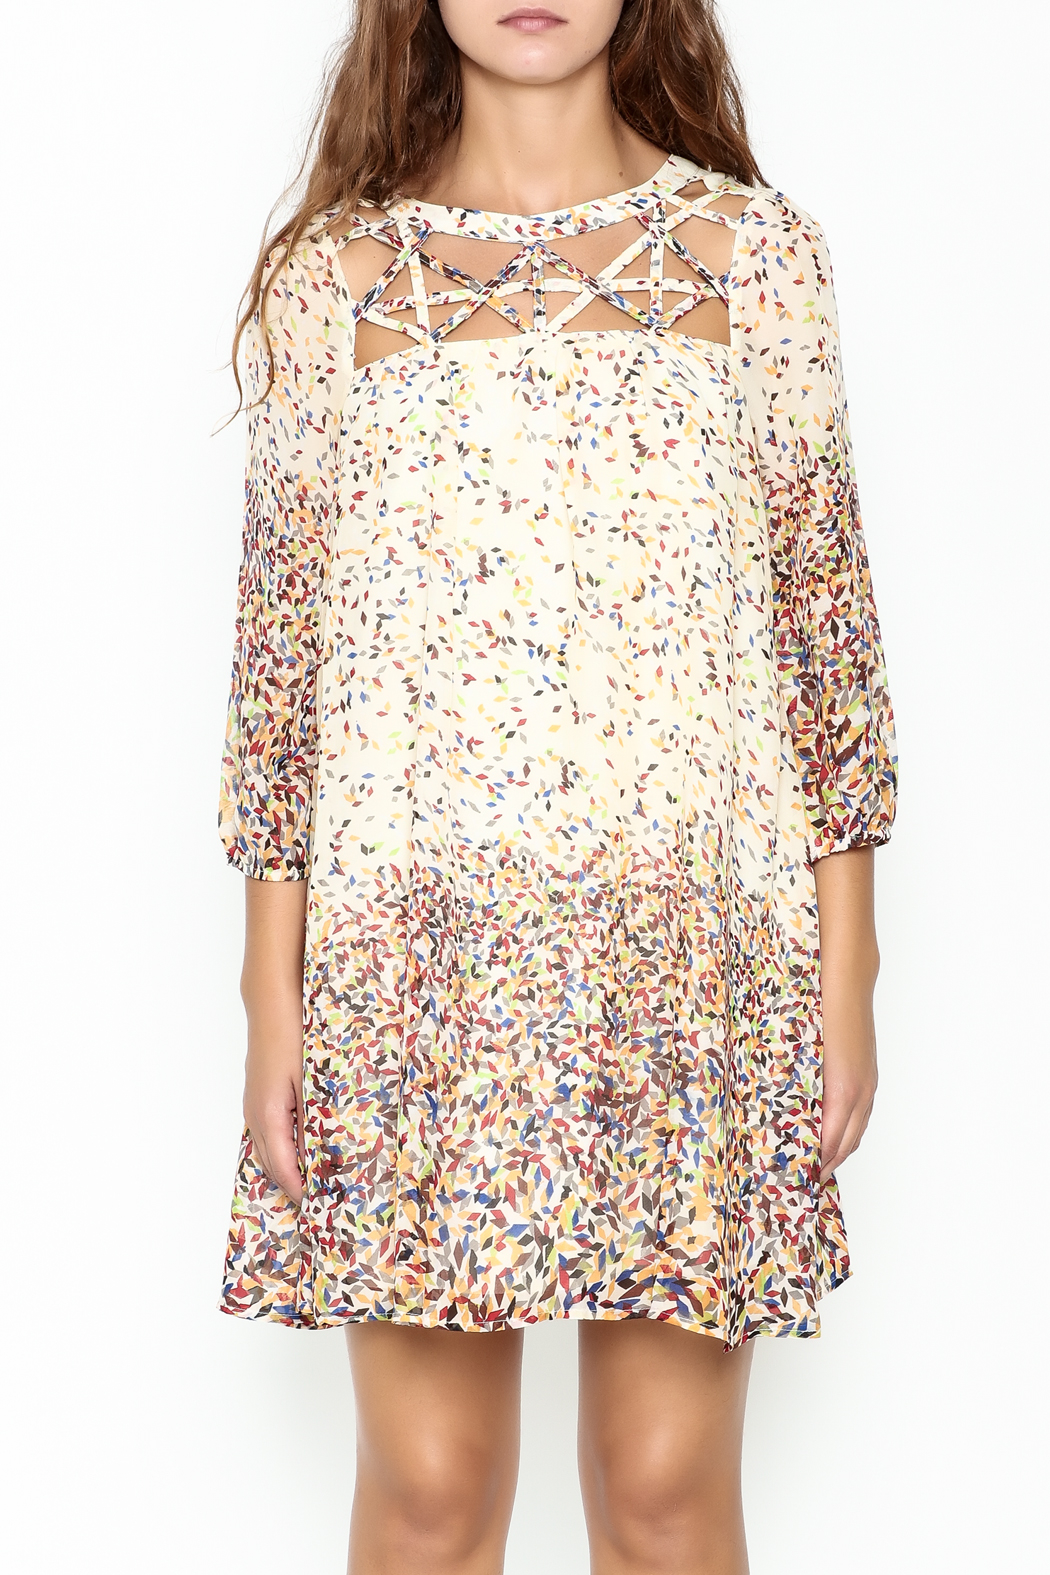 KORI AMERICA Confetti Dress - Front Full Image